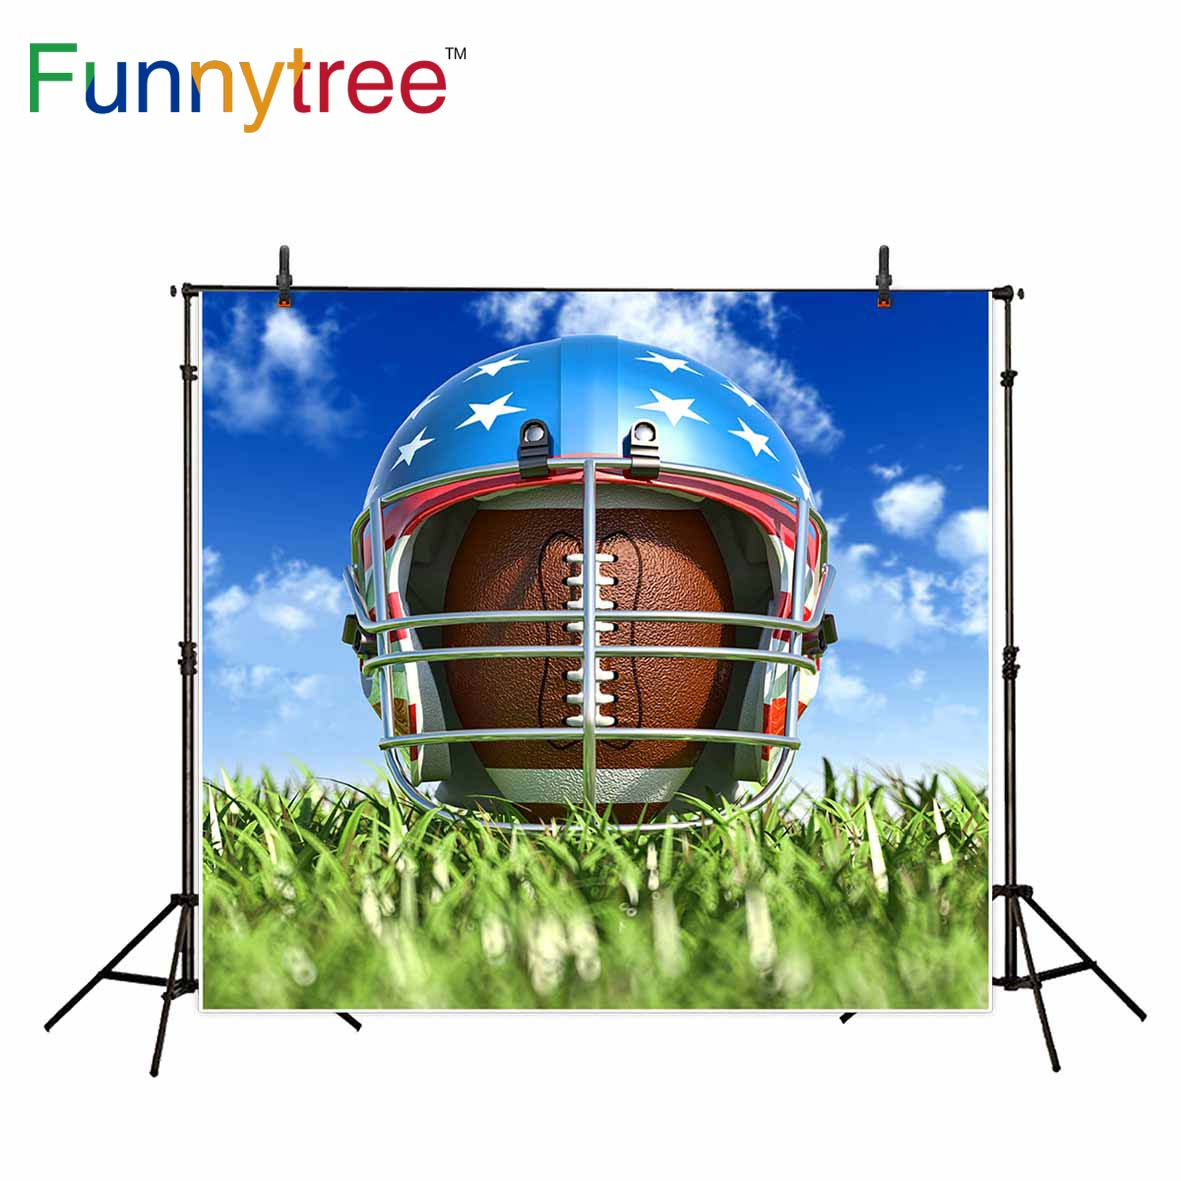 Funnytree backgrounds for photography studio American football helmet grass sport sky professional backdrop photobooth printed